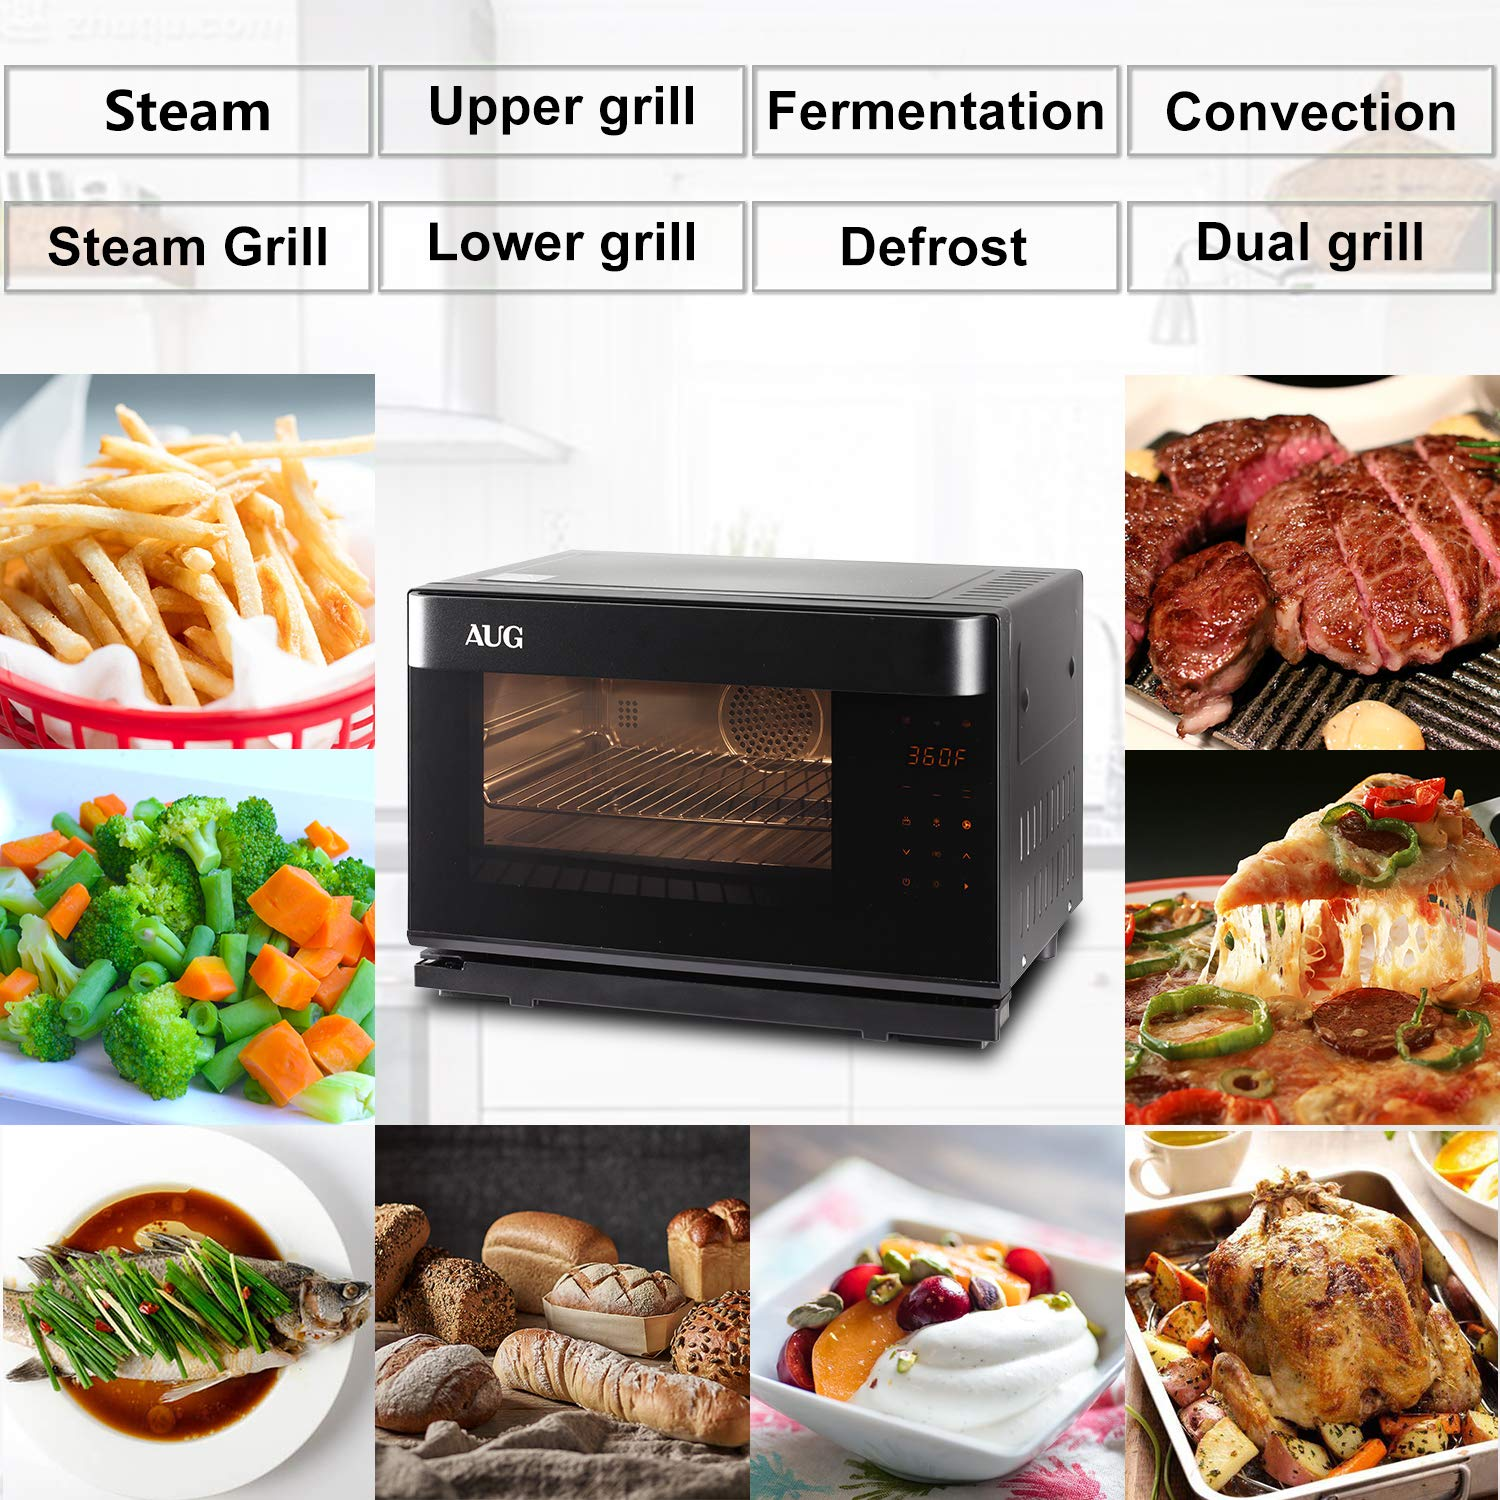 AUG Convection Steam Grill Oven, 0.9 Cu. Ft. Smart Household Countertop Combi Steamer with 8 Cooking Modes, Matte Black Stainless Steel by AUG (Image #5)